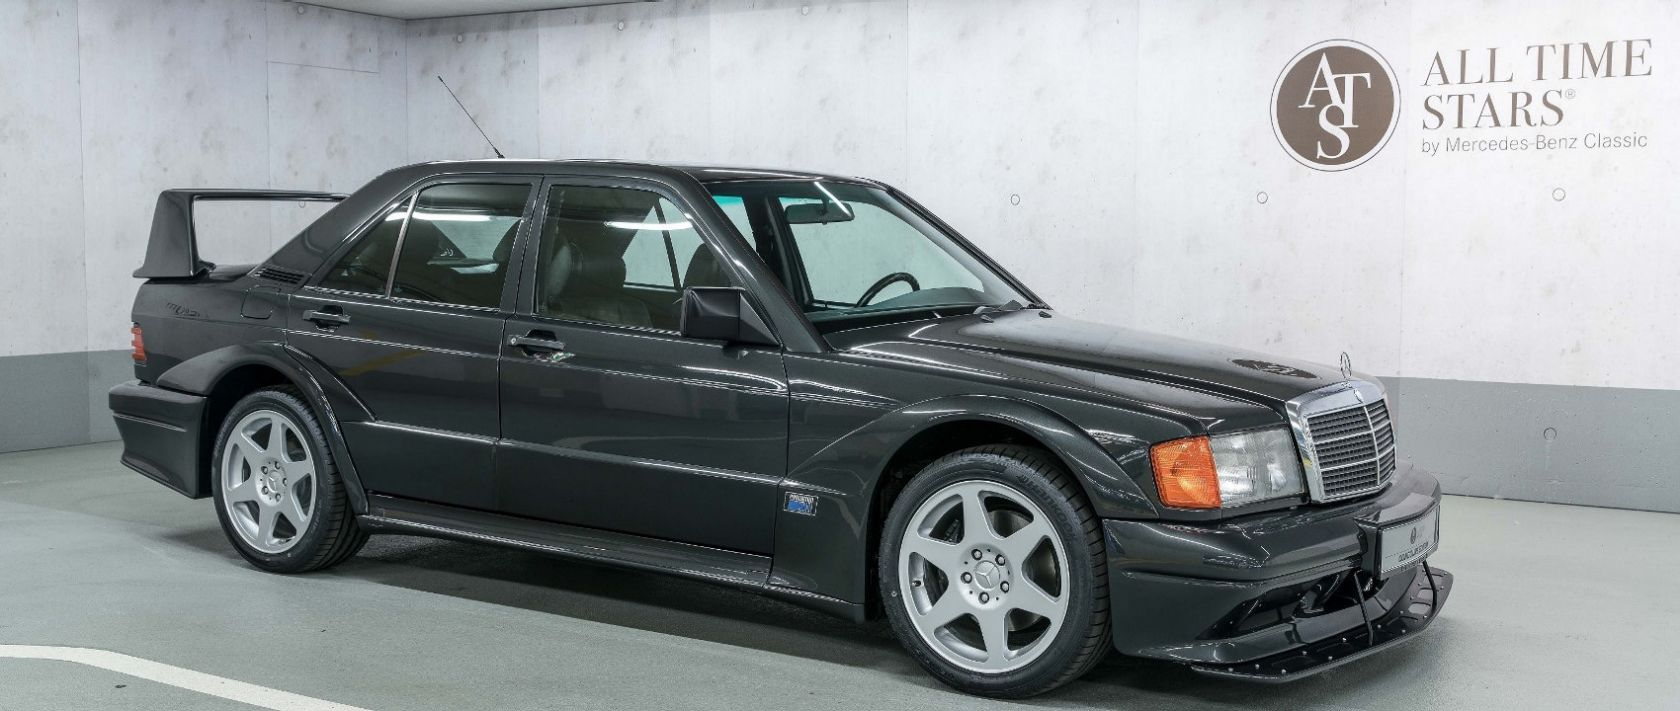 Release the beast: The Mercedes-Benz 190 E 2.5-16 EVO 2 is ready for roaring in the shady darkness of the parking lot.